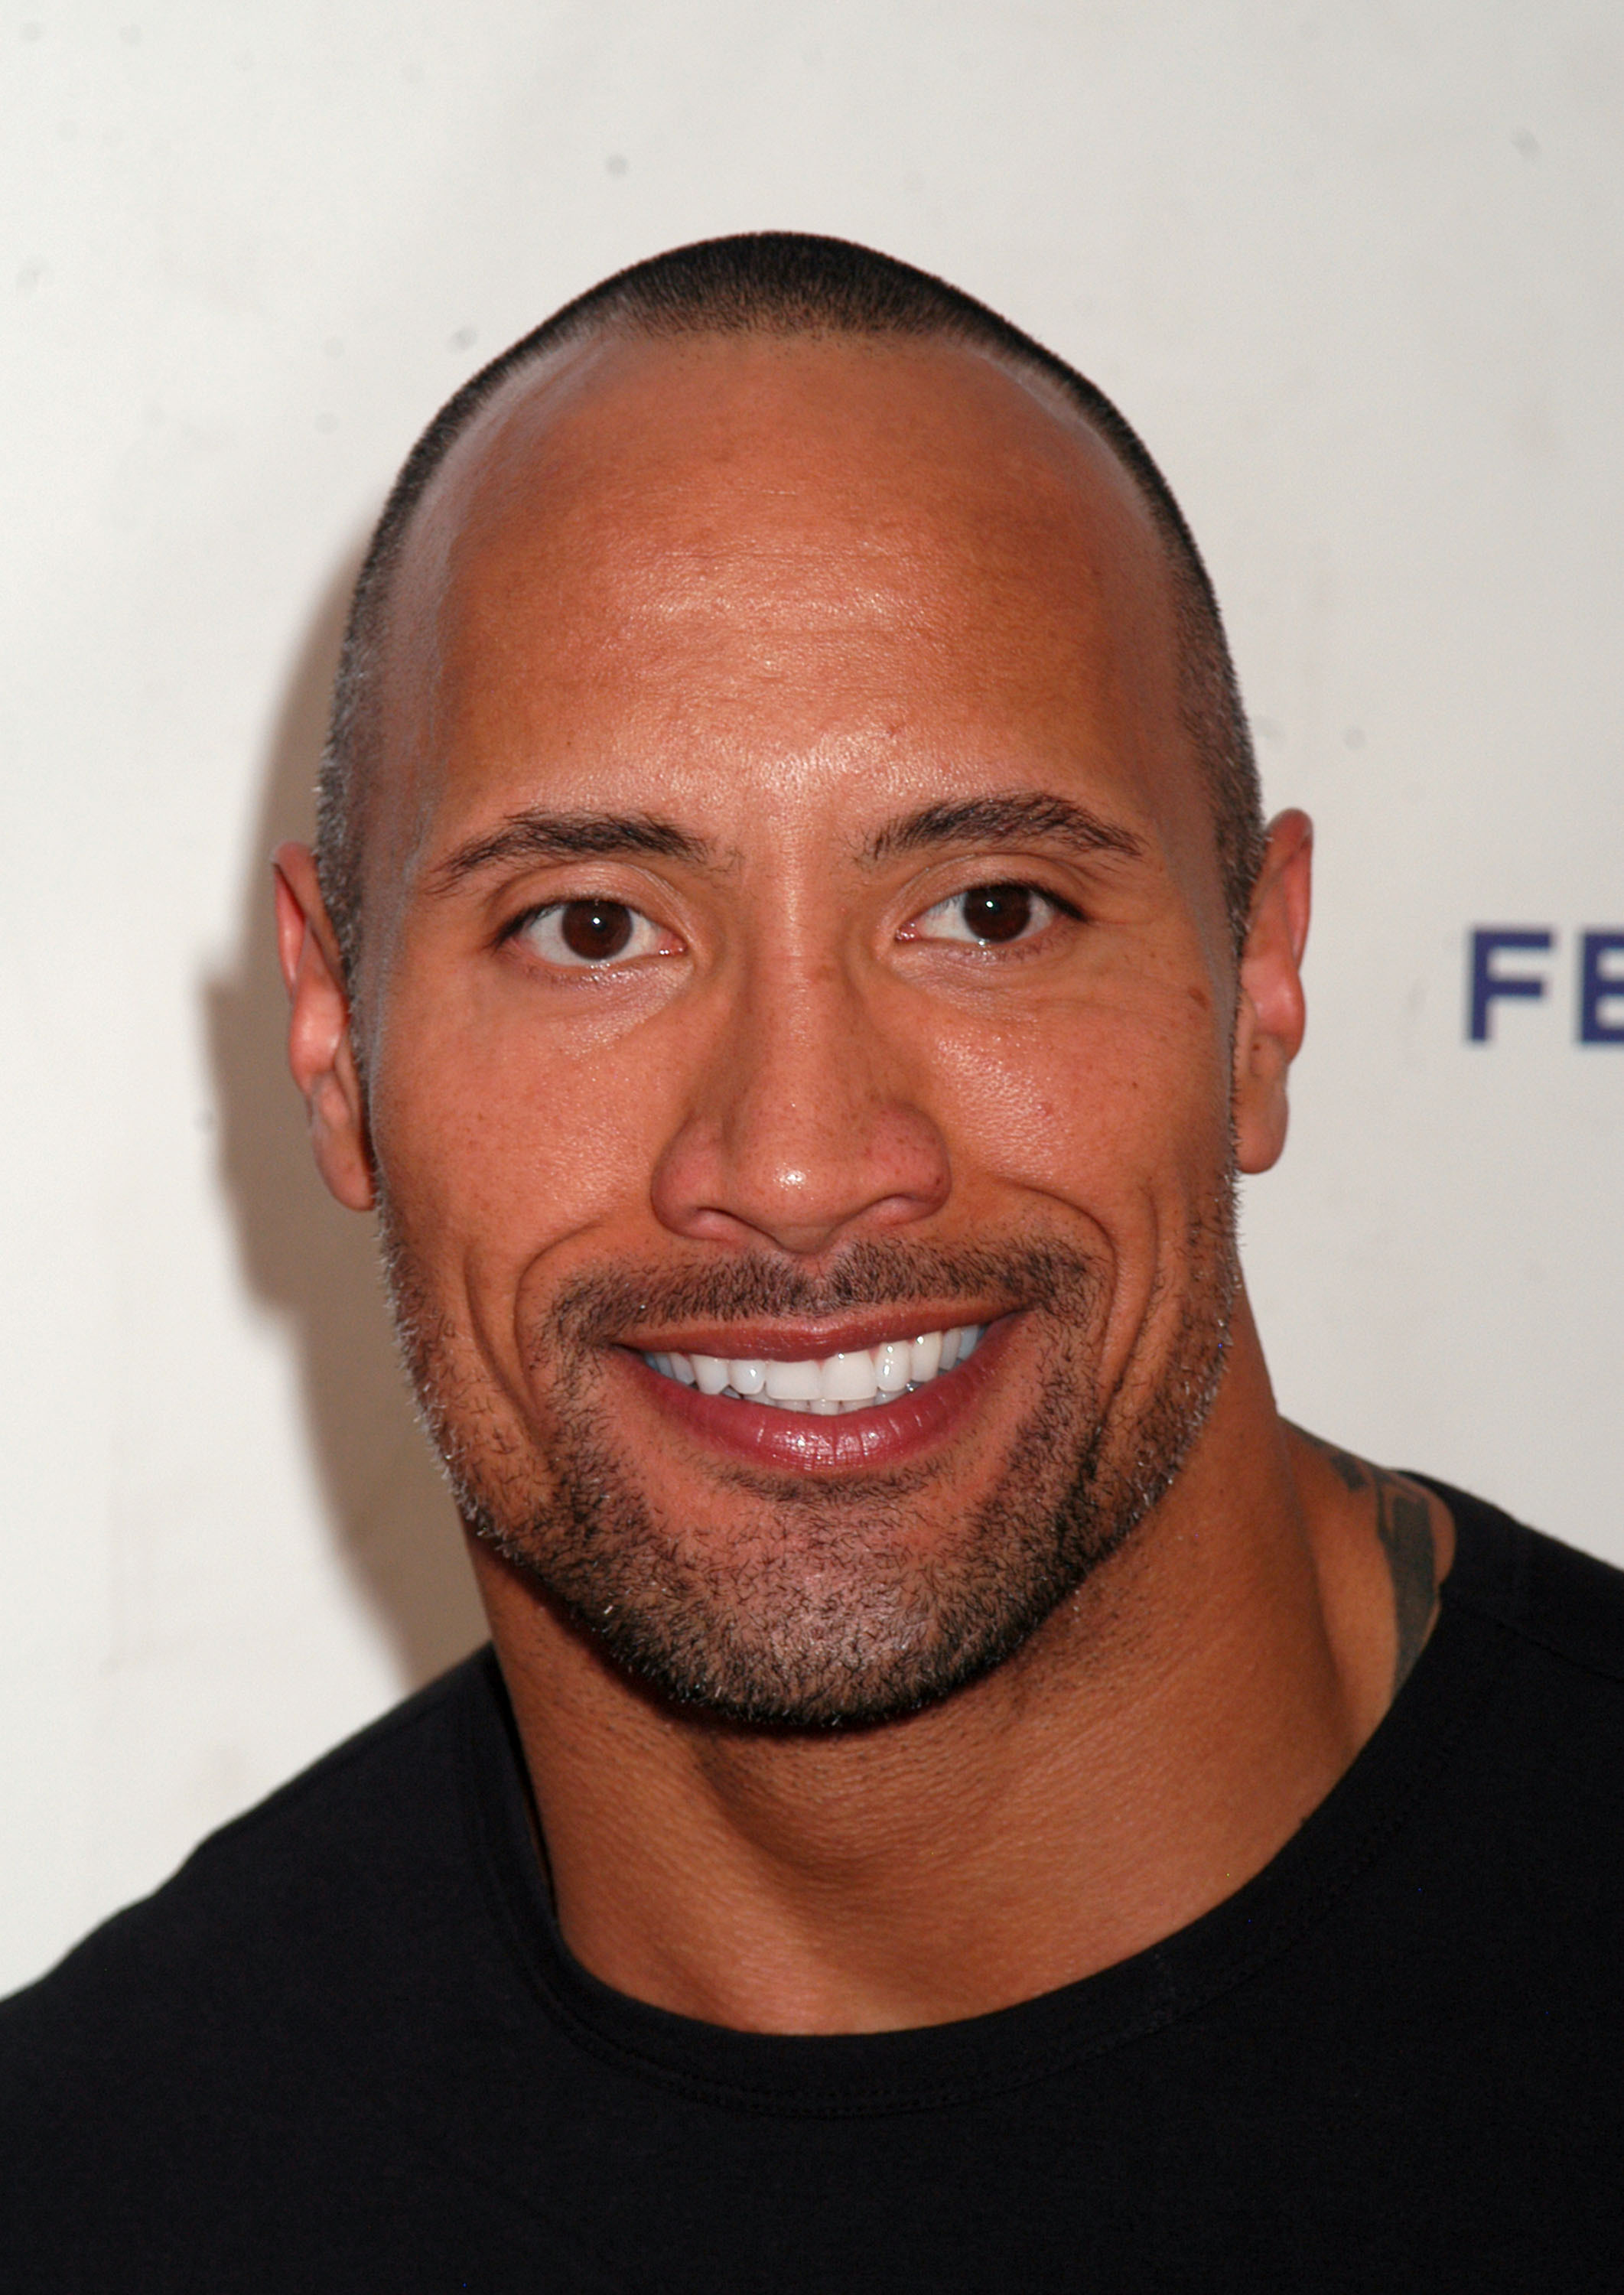 """Dwayne """"The Rock"""" Johnson attends premiere of """"Racing Dreams""""  at SVA Theatre during Tribeca FIlm Festival at Ziegfeld Theatre  in New York, NY on April 25, 2009 by Joy Scheller/iPhoto"""